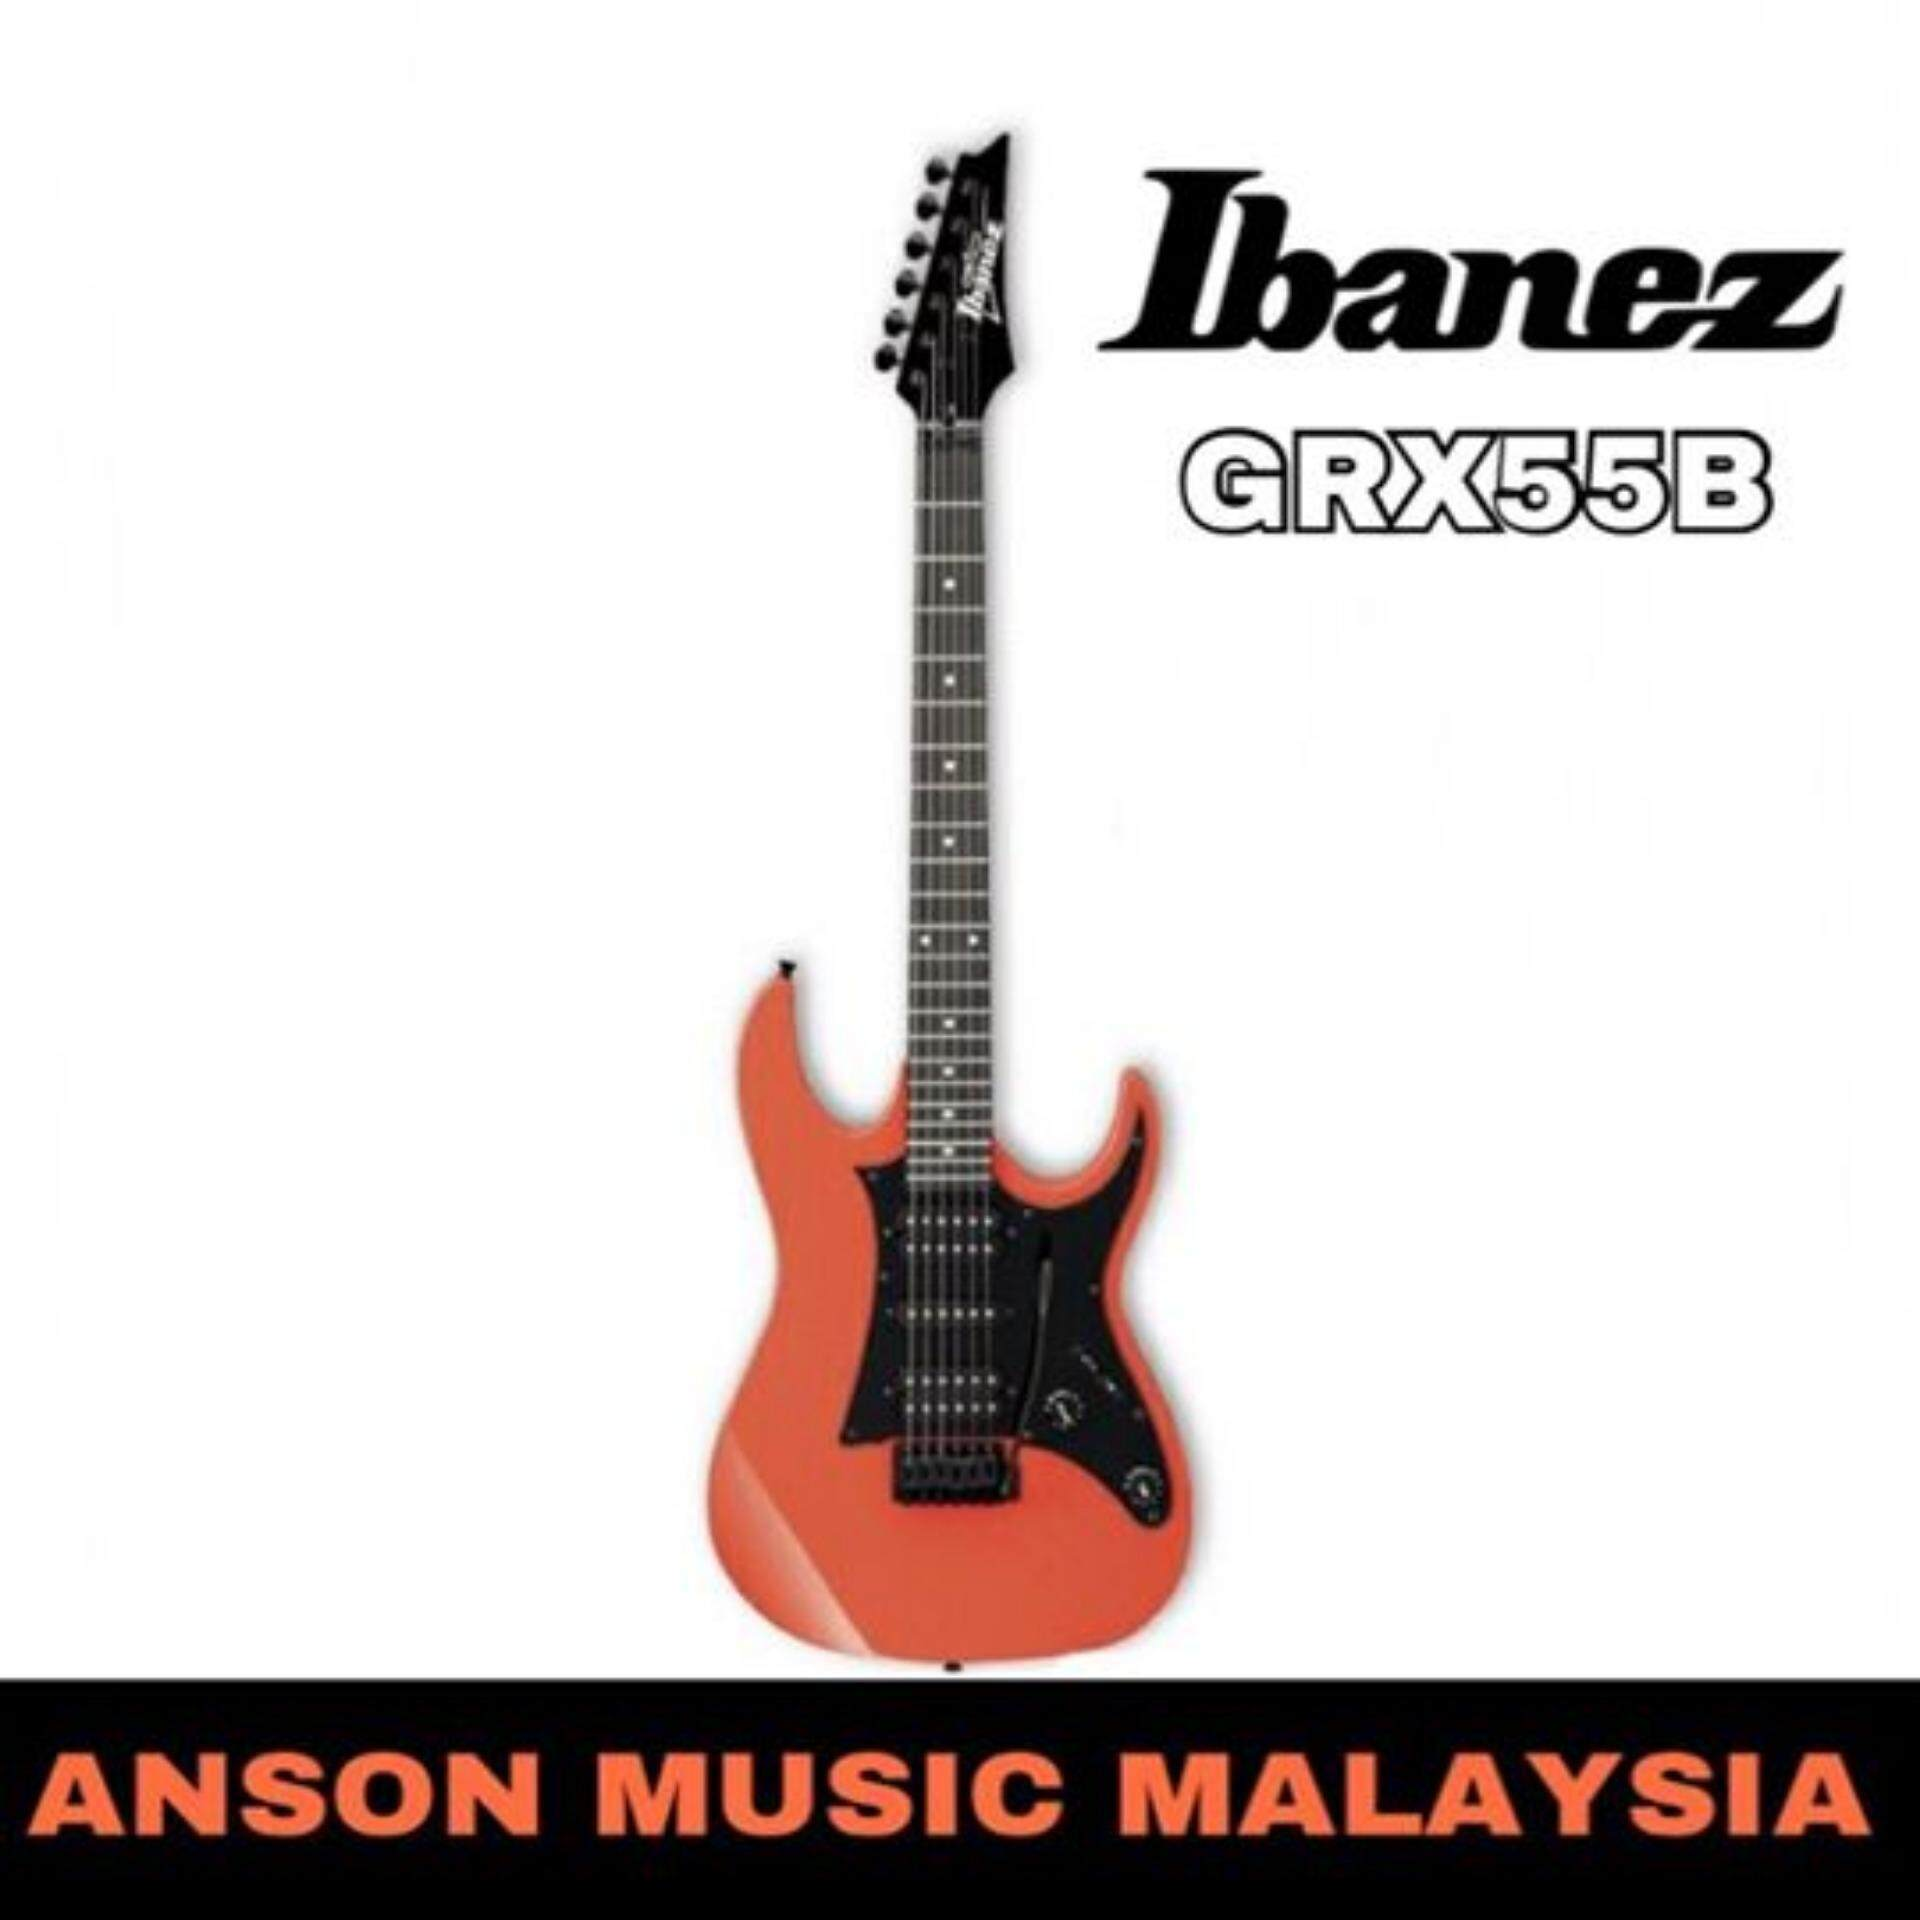 Ibanez S520 Wiring Diagram Detailed Schematic Diagrams Dimarzio Dsonic Famous Ex Series Sdtv Remote Ge Motor Bass